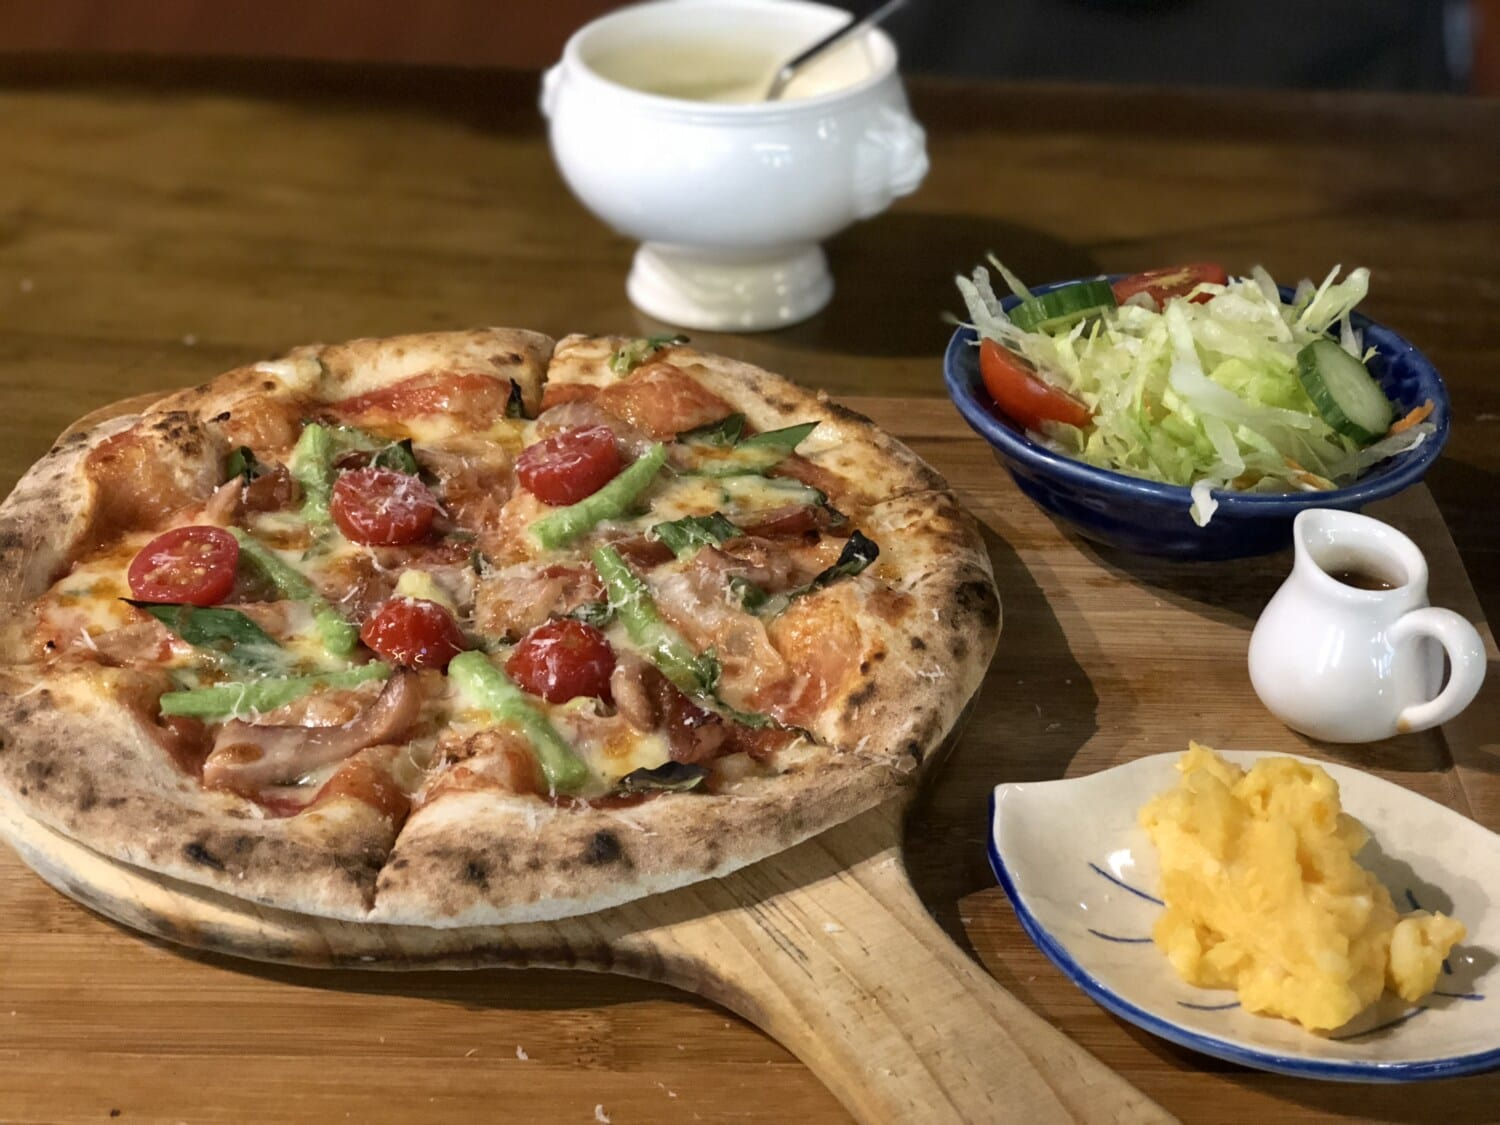 pizza, italian, restaurant, meat, dish, lunch, food, meal, dinner, cheese